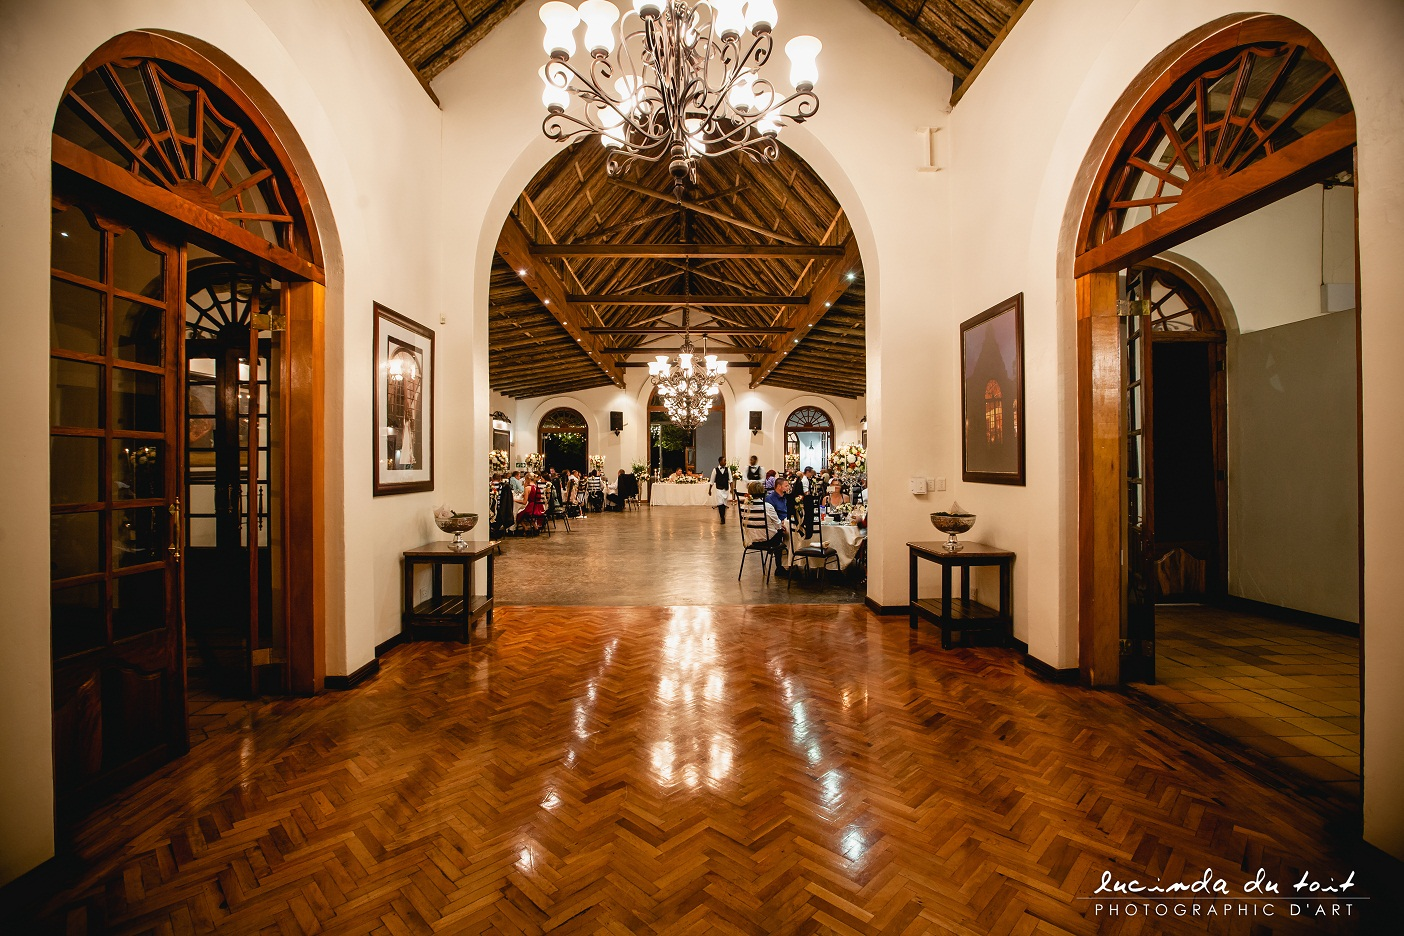 Kleinkaap boutique hotel wedding venue gauteng wedding venue for Kleine boutique hotels